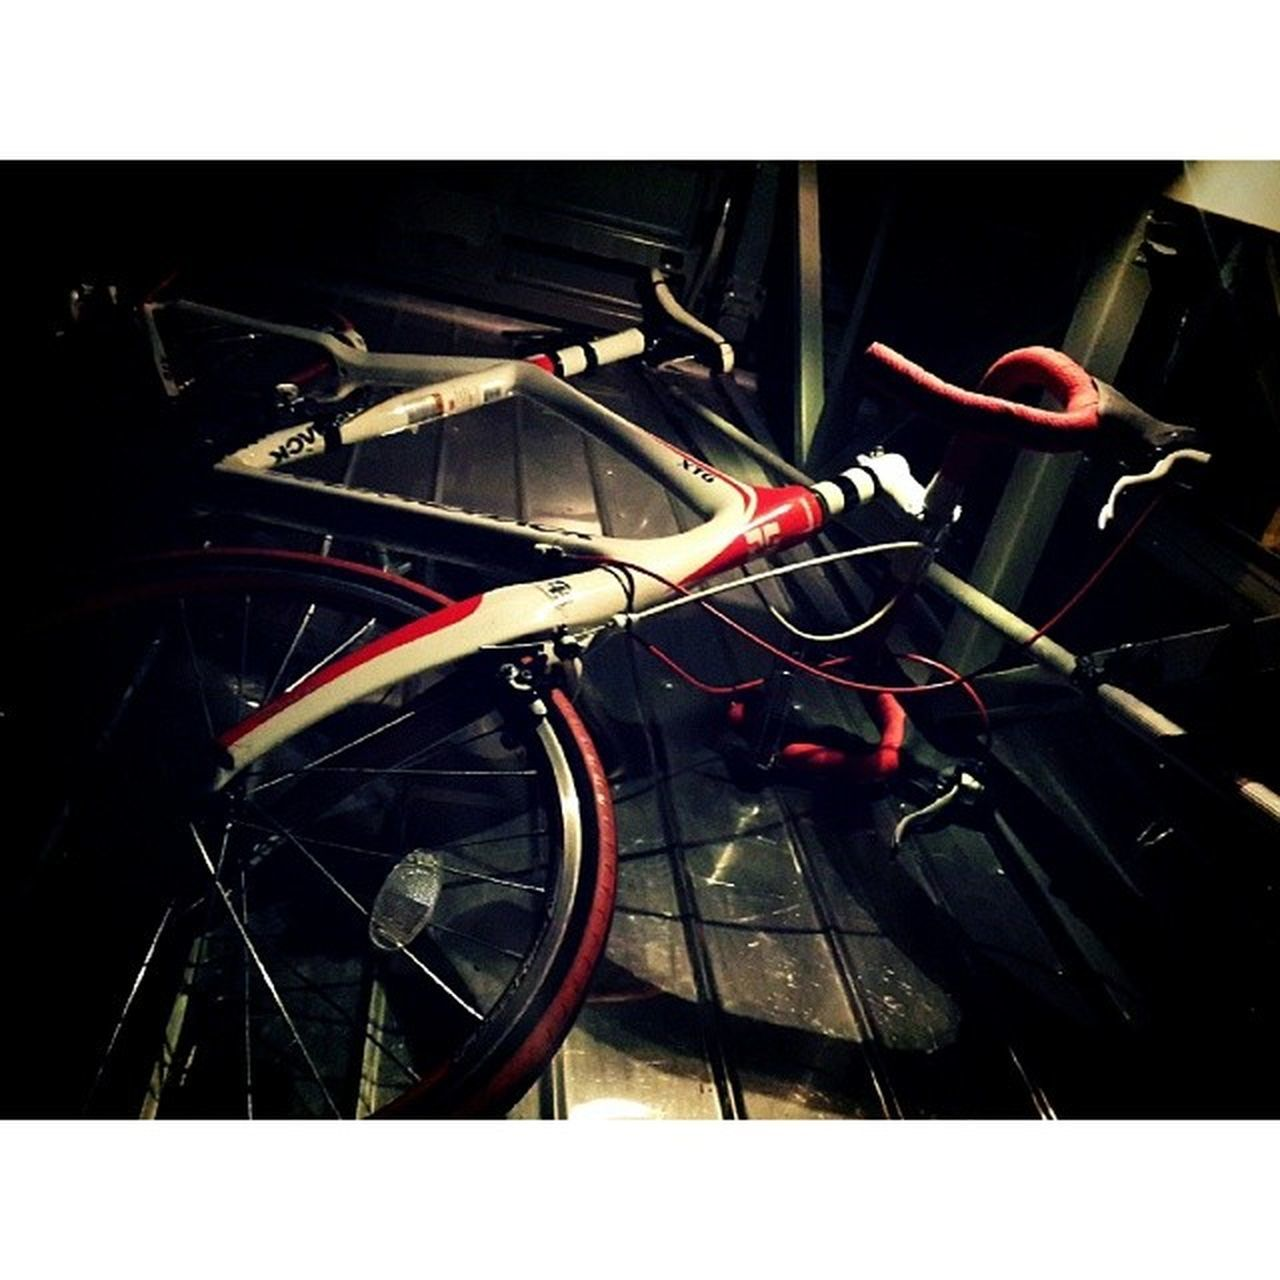 transfer print, transportation, mode of transport, land vehicle, auto post production filter, car, stationary, bicycle, parked, travel, wheel, high angle view, no people, parking, outdoors, part of, metal, day, street